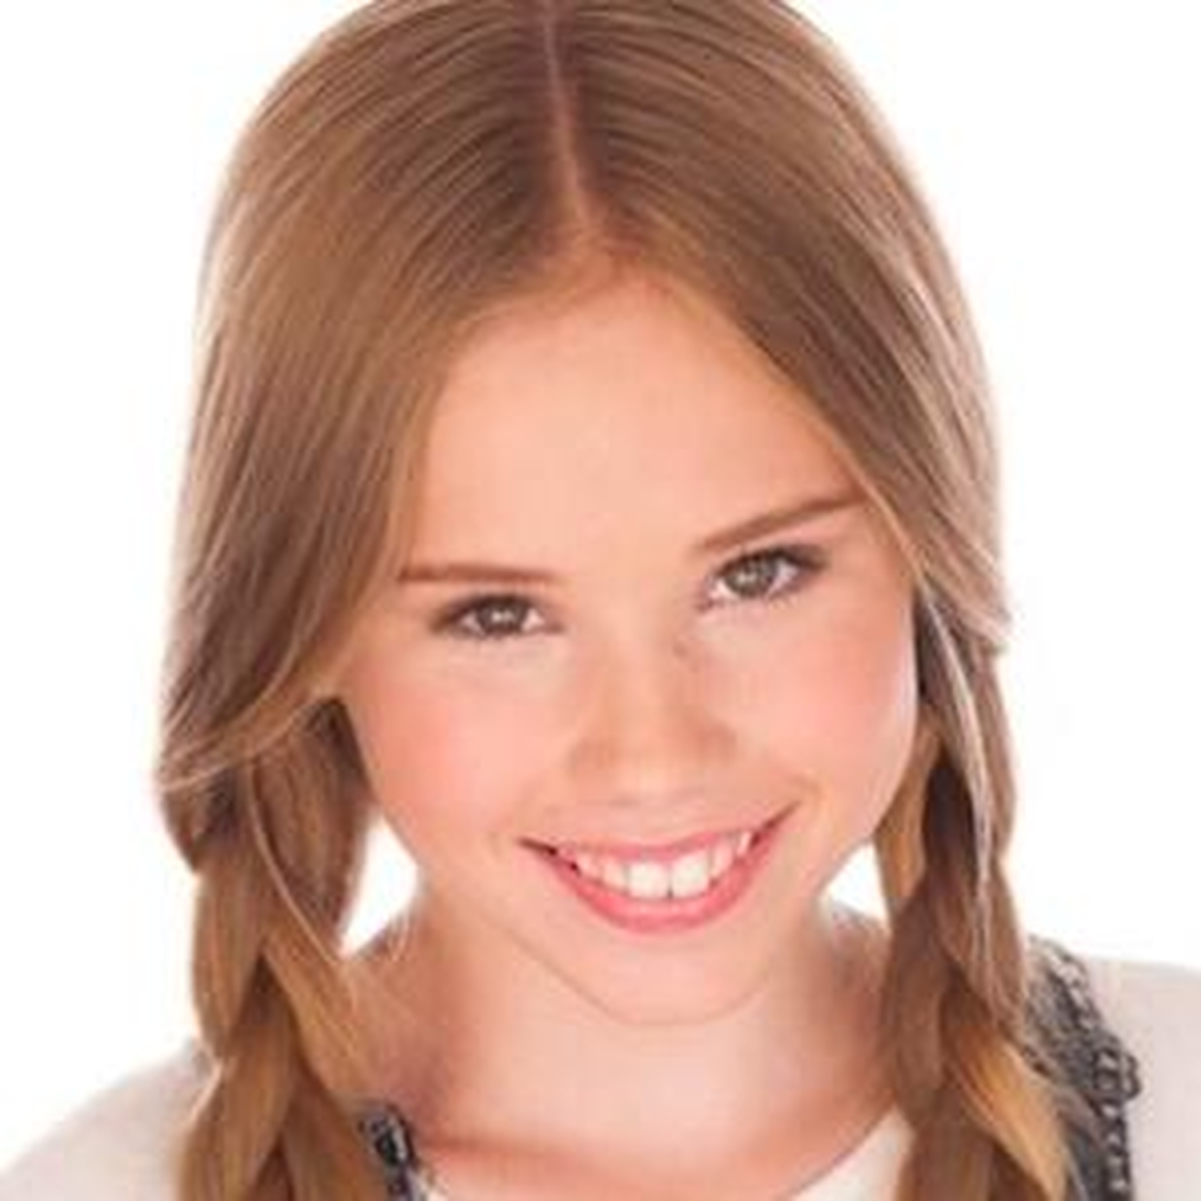 Lexee Smith wiki, Lexee Smith bio, Lexee Smith news